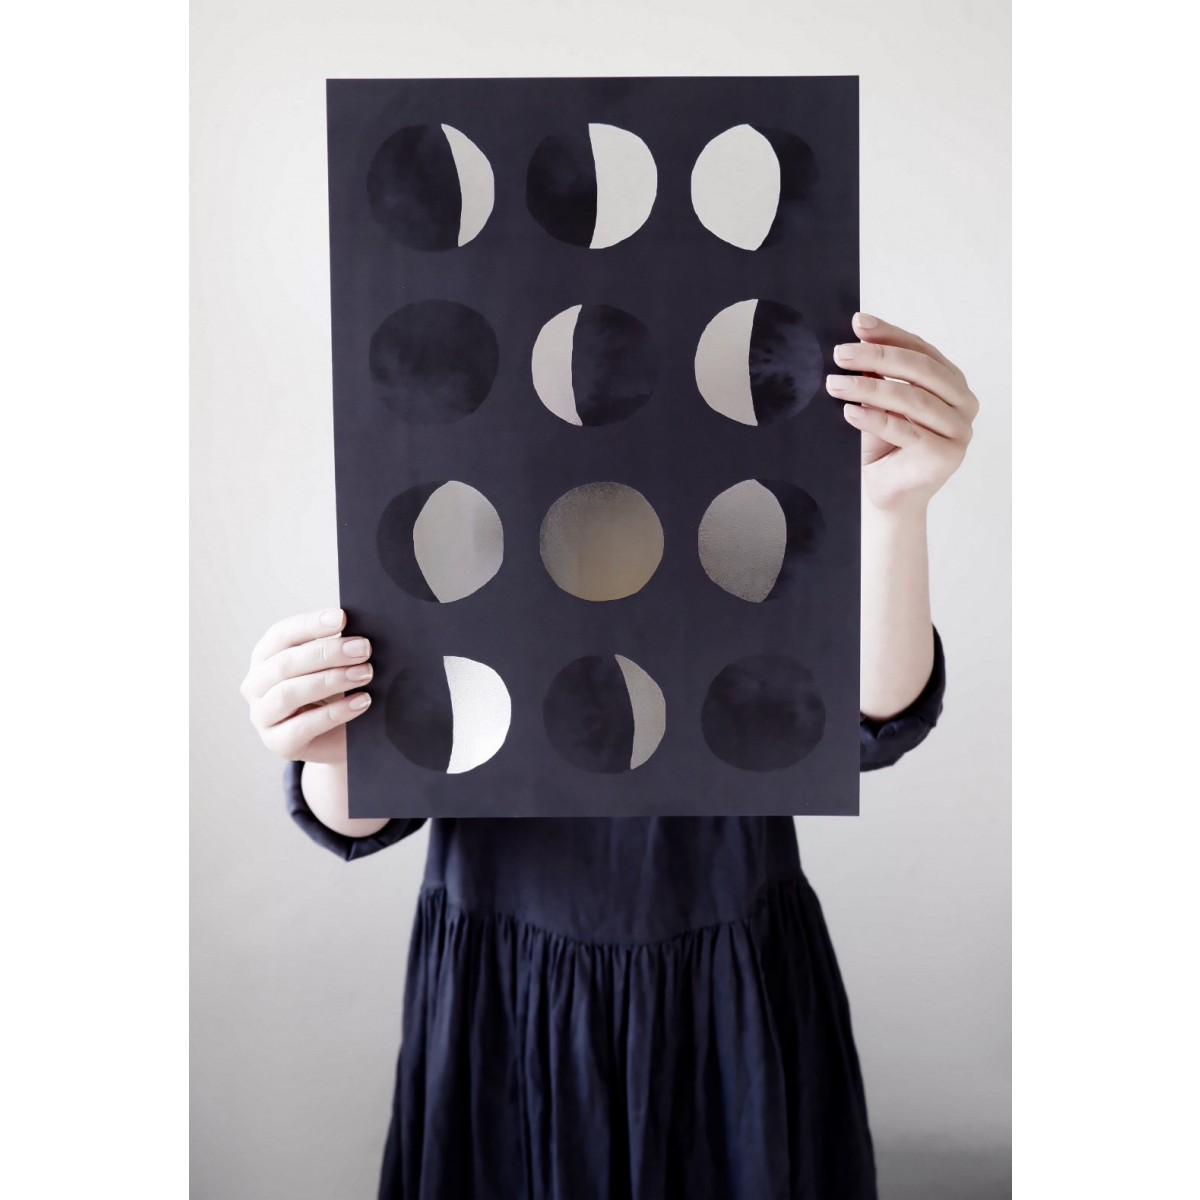 PHASES OF THE MOON - A3 Print mit Silberfolie - Anna Cosma